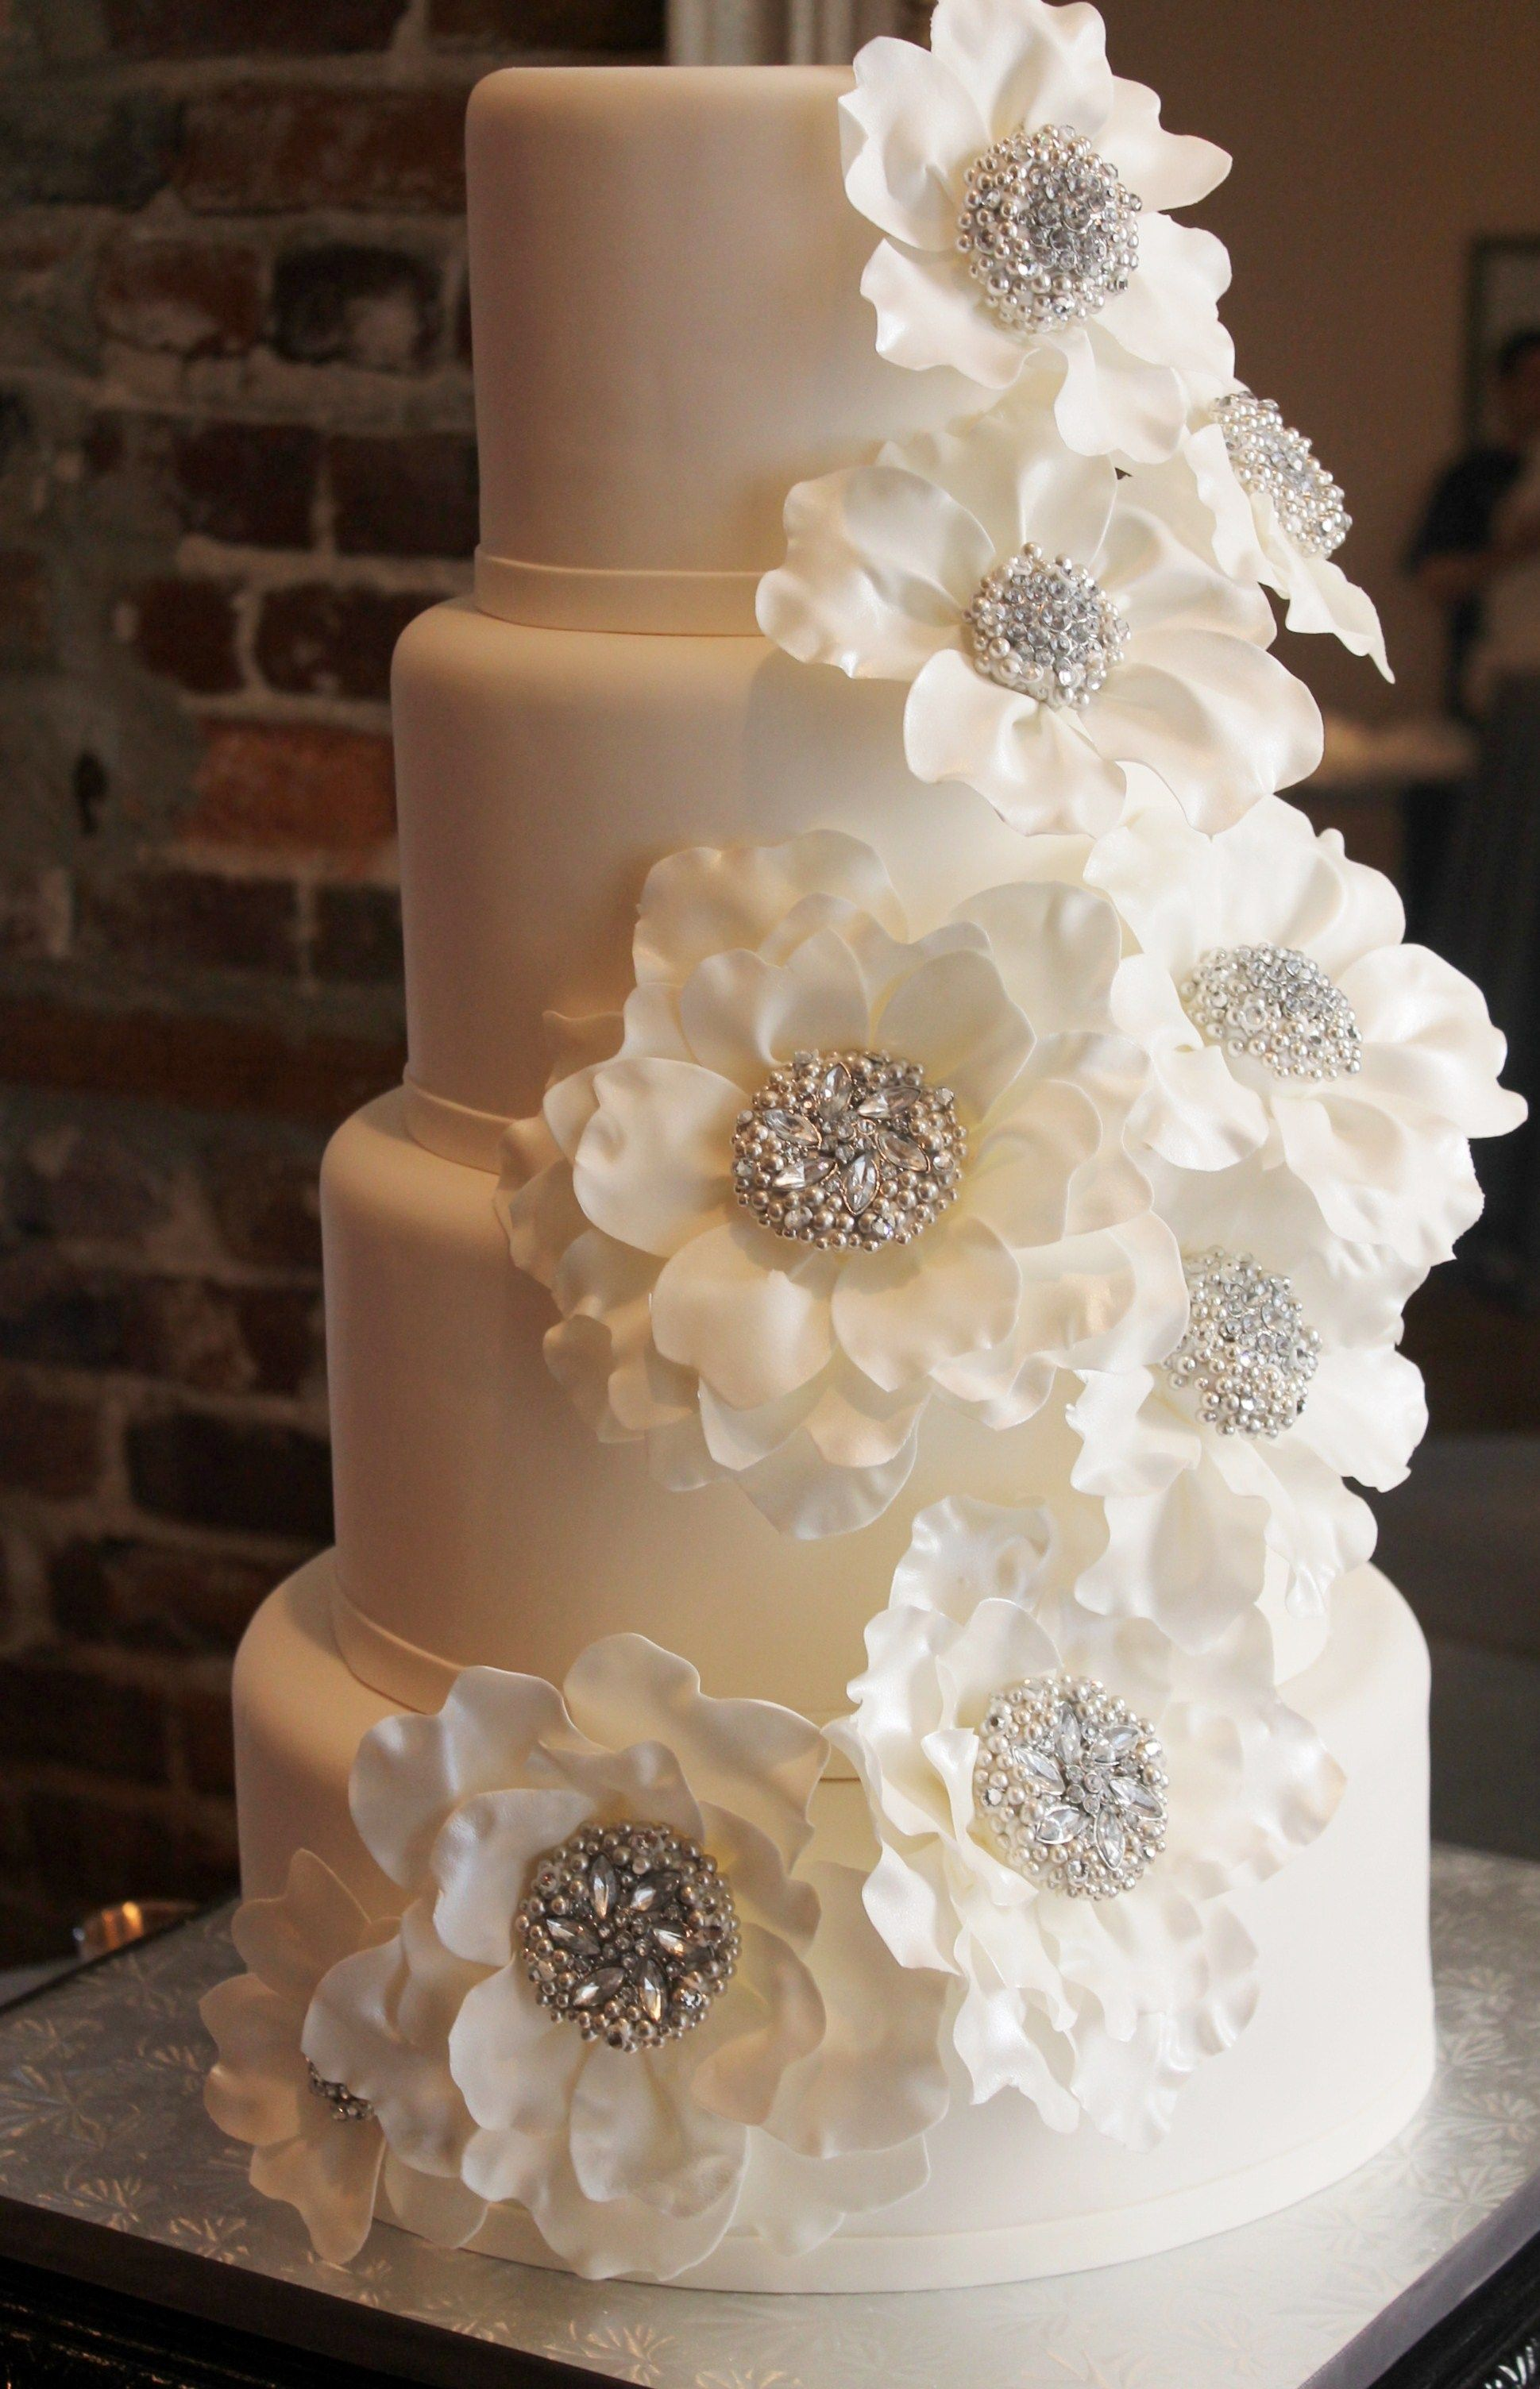 Handmade jeweled flower centers create the look of the